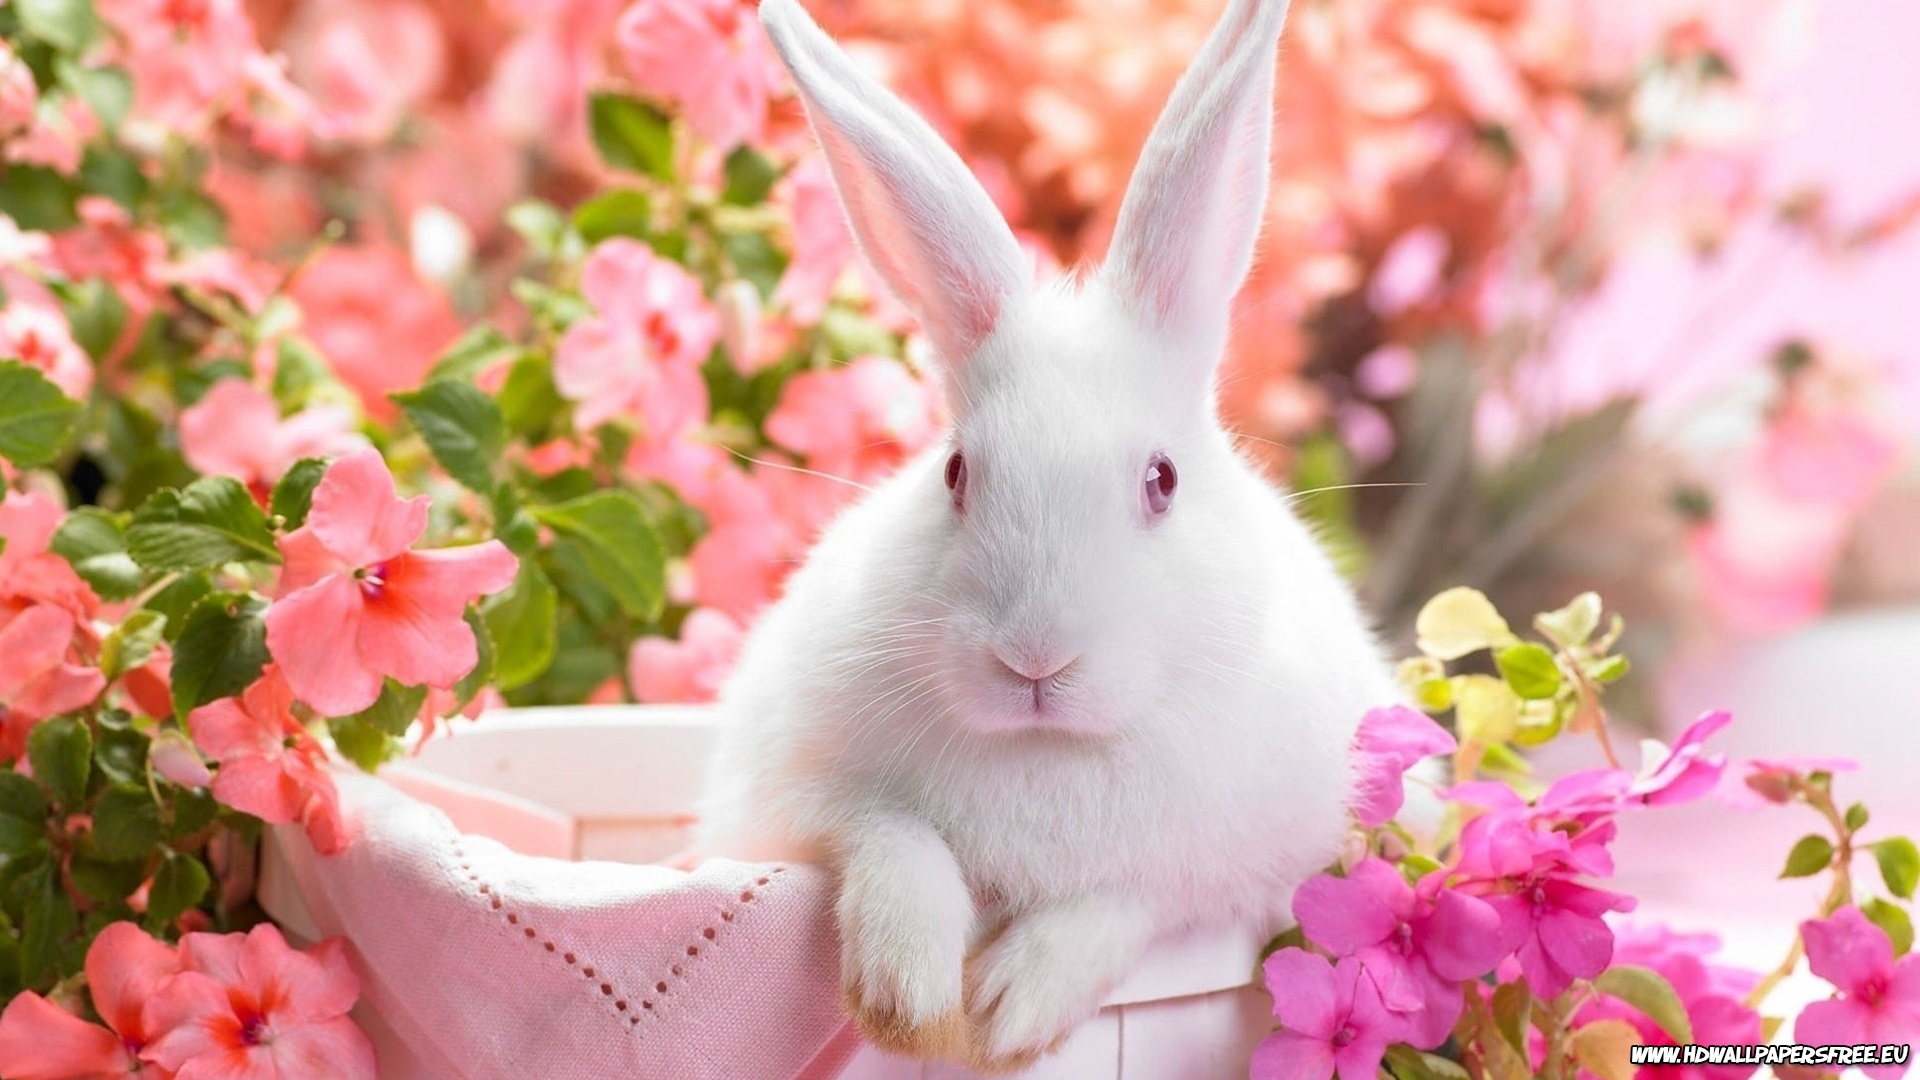 Cute Easter Bunny high definition wallpaper picture 1920x1080